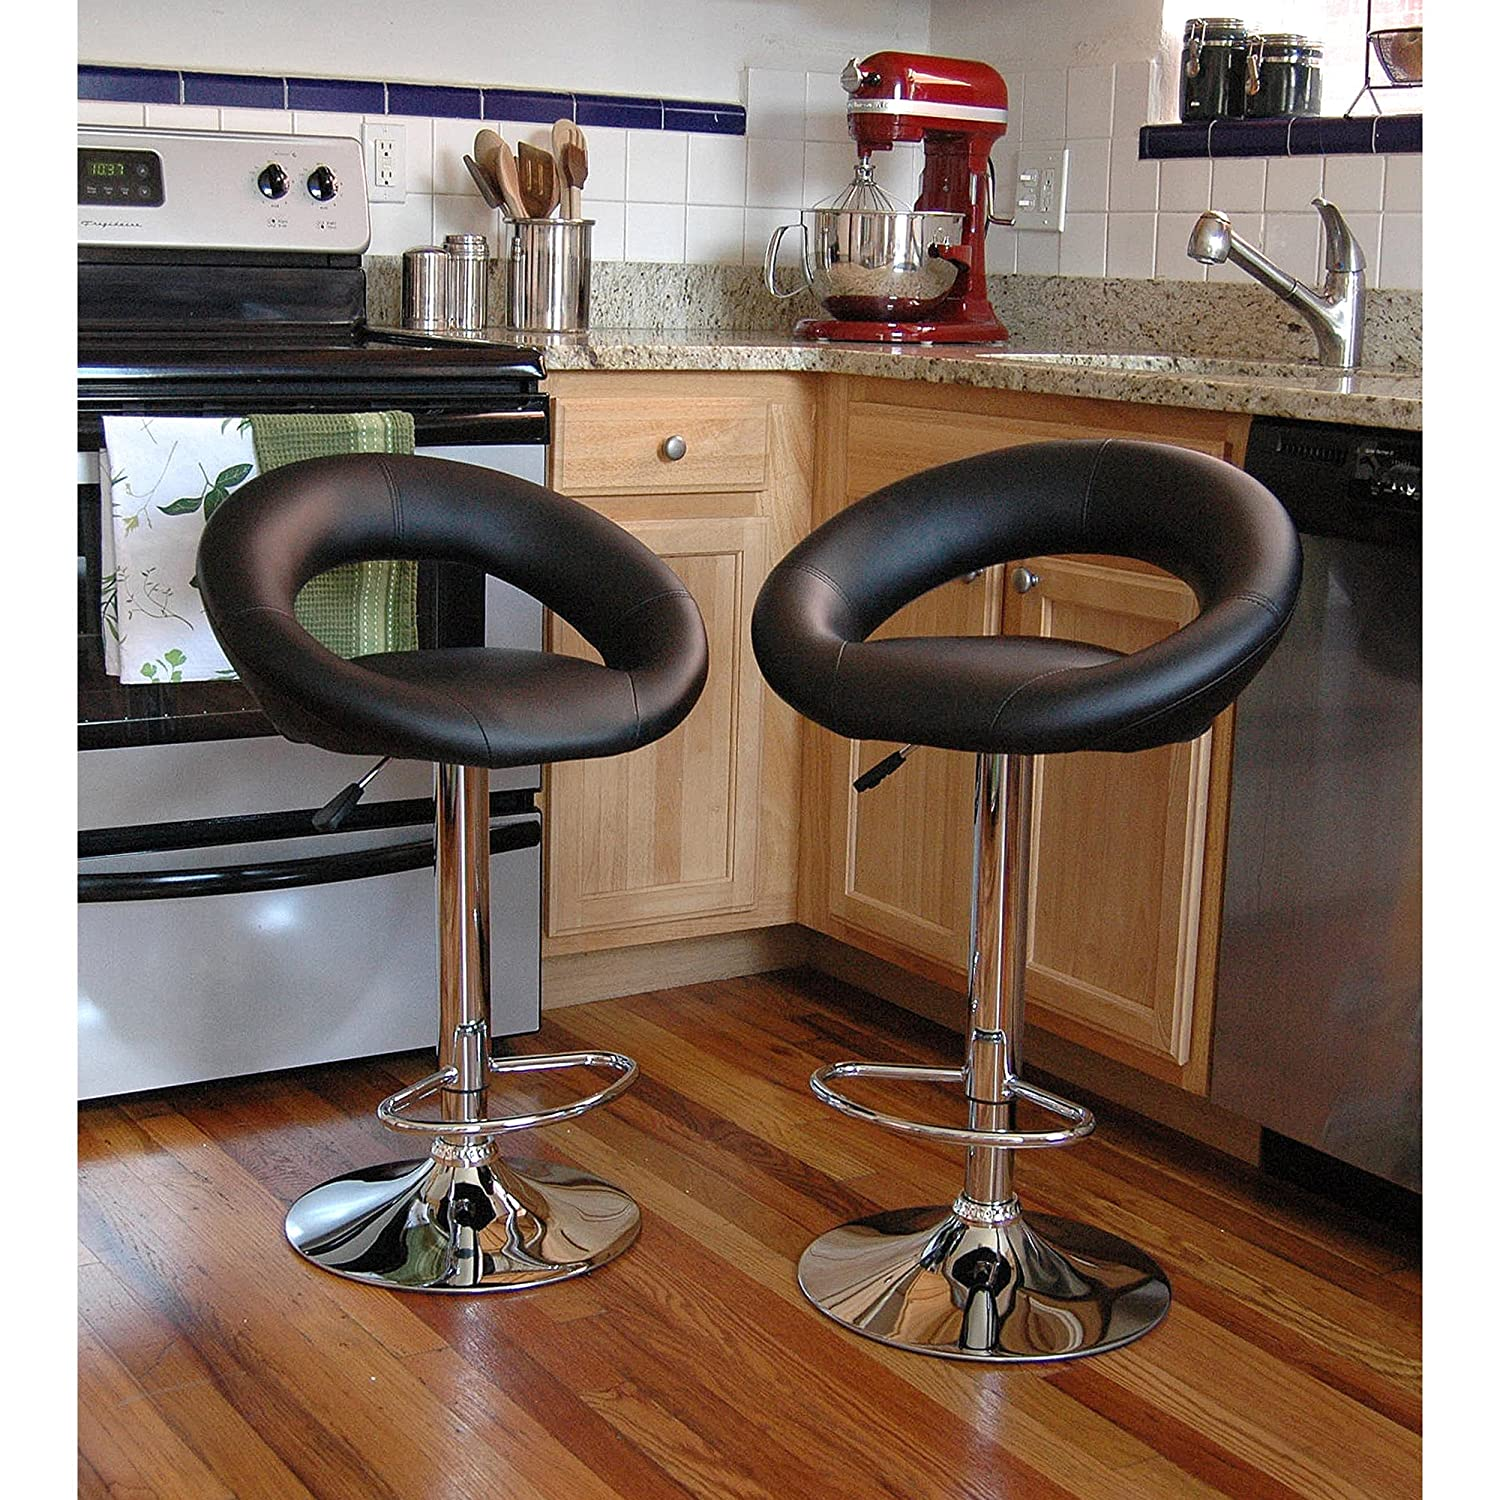 Bar Stools For White Kitchen: Bar Stool Set 2 Piece Adjustable Height Seat Chair Swivel Modern Kitchen Counter